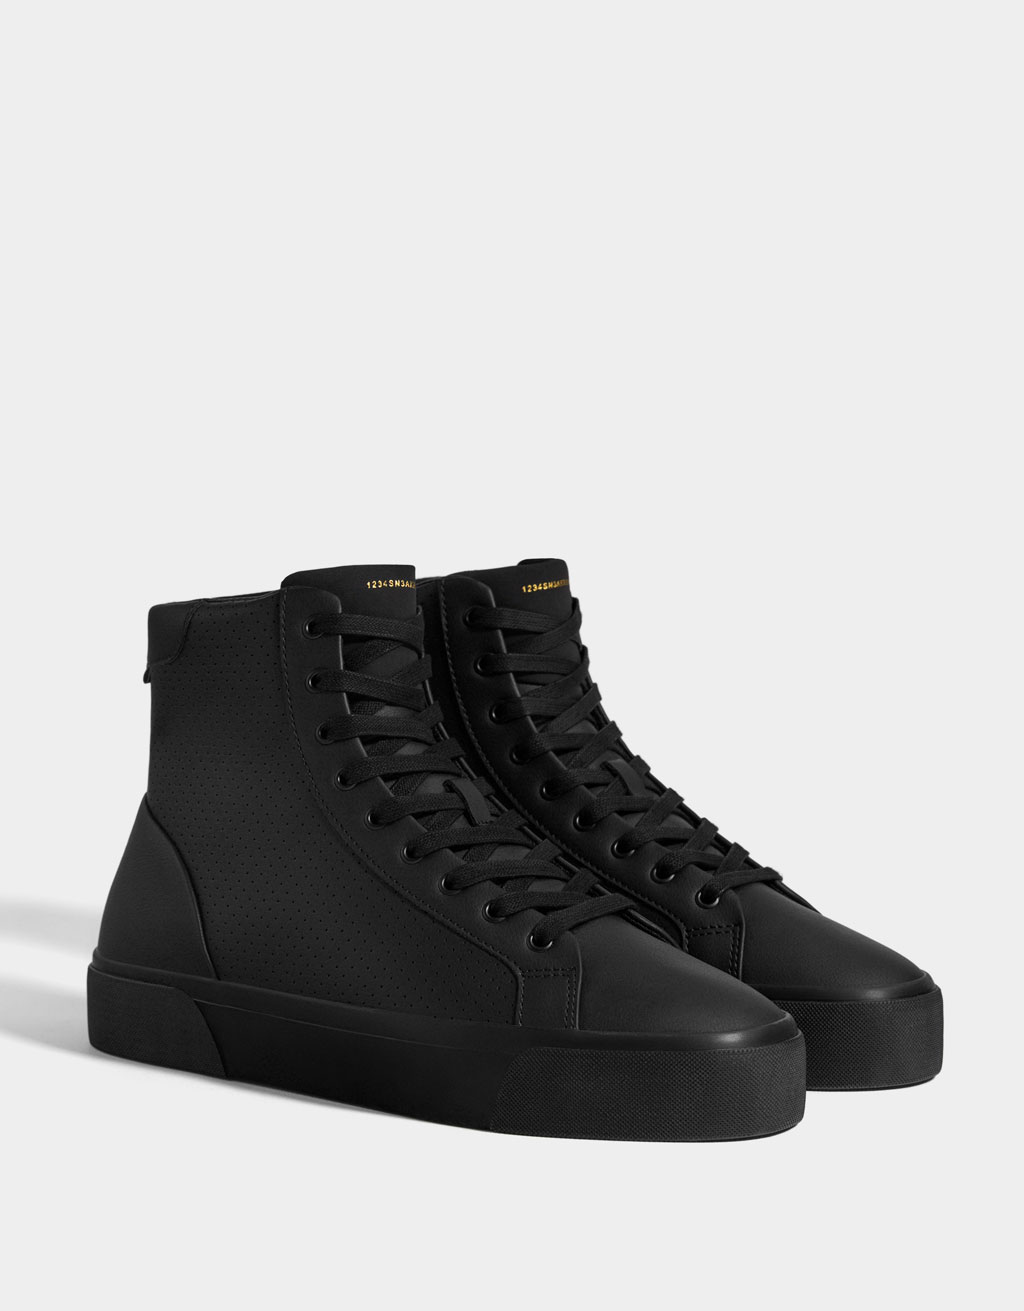 Men's high-top trainers with broguing